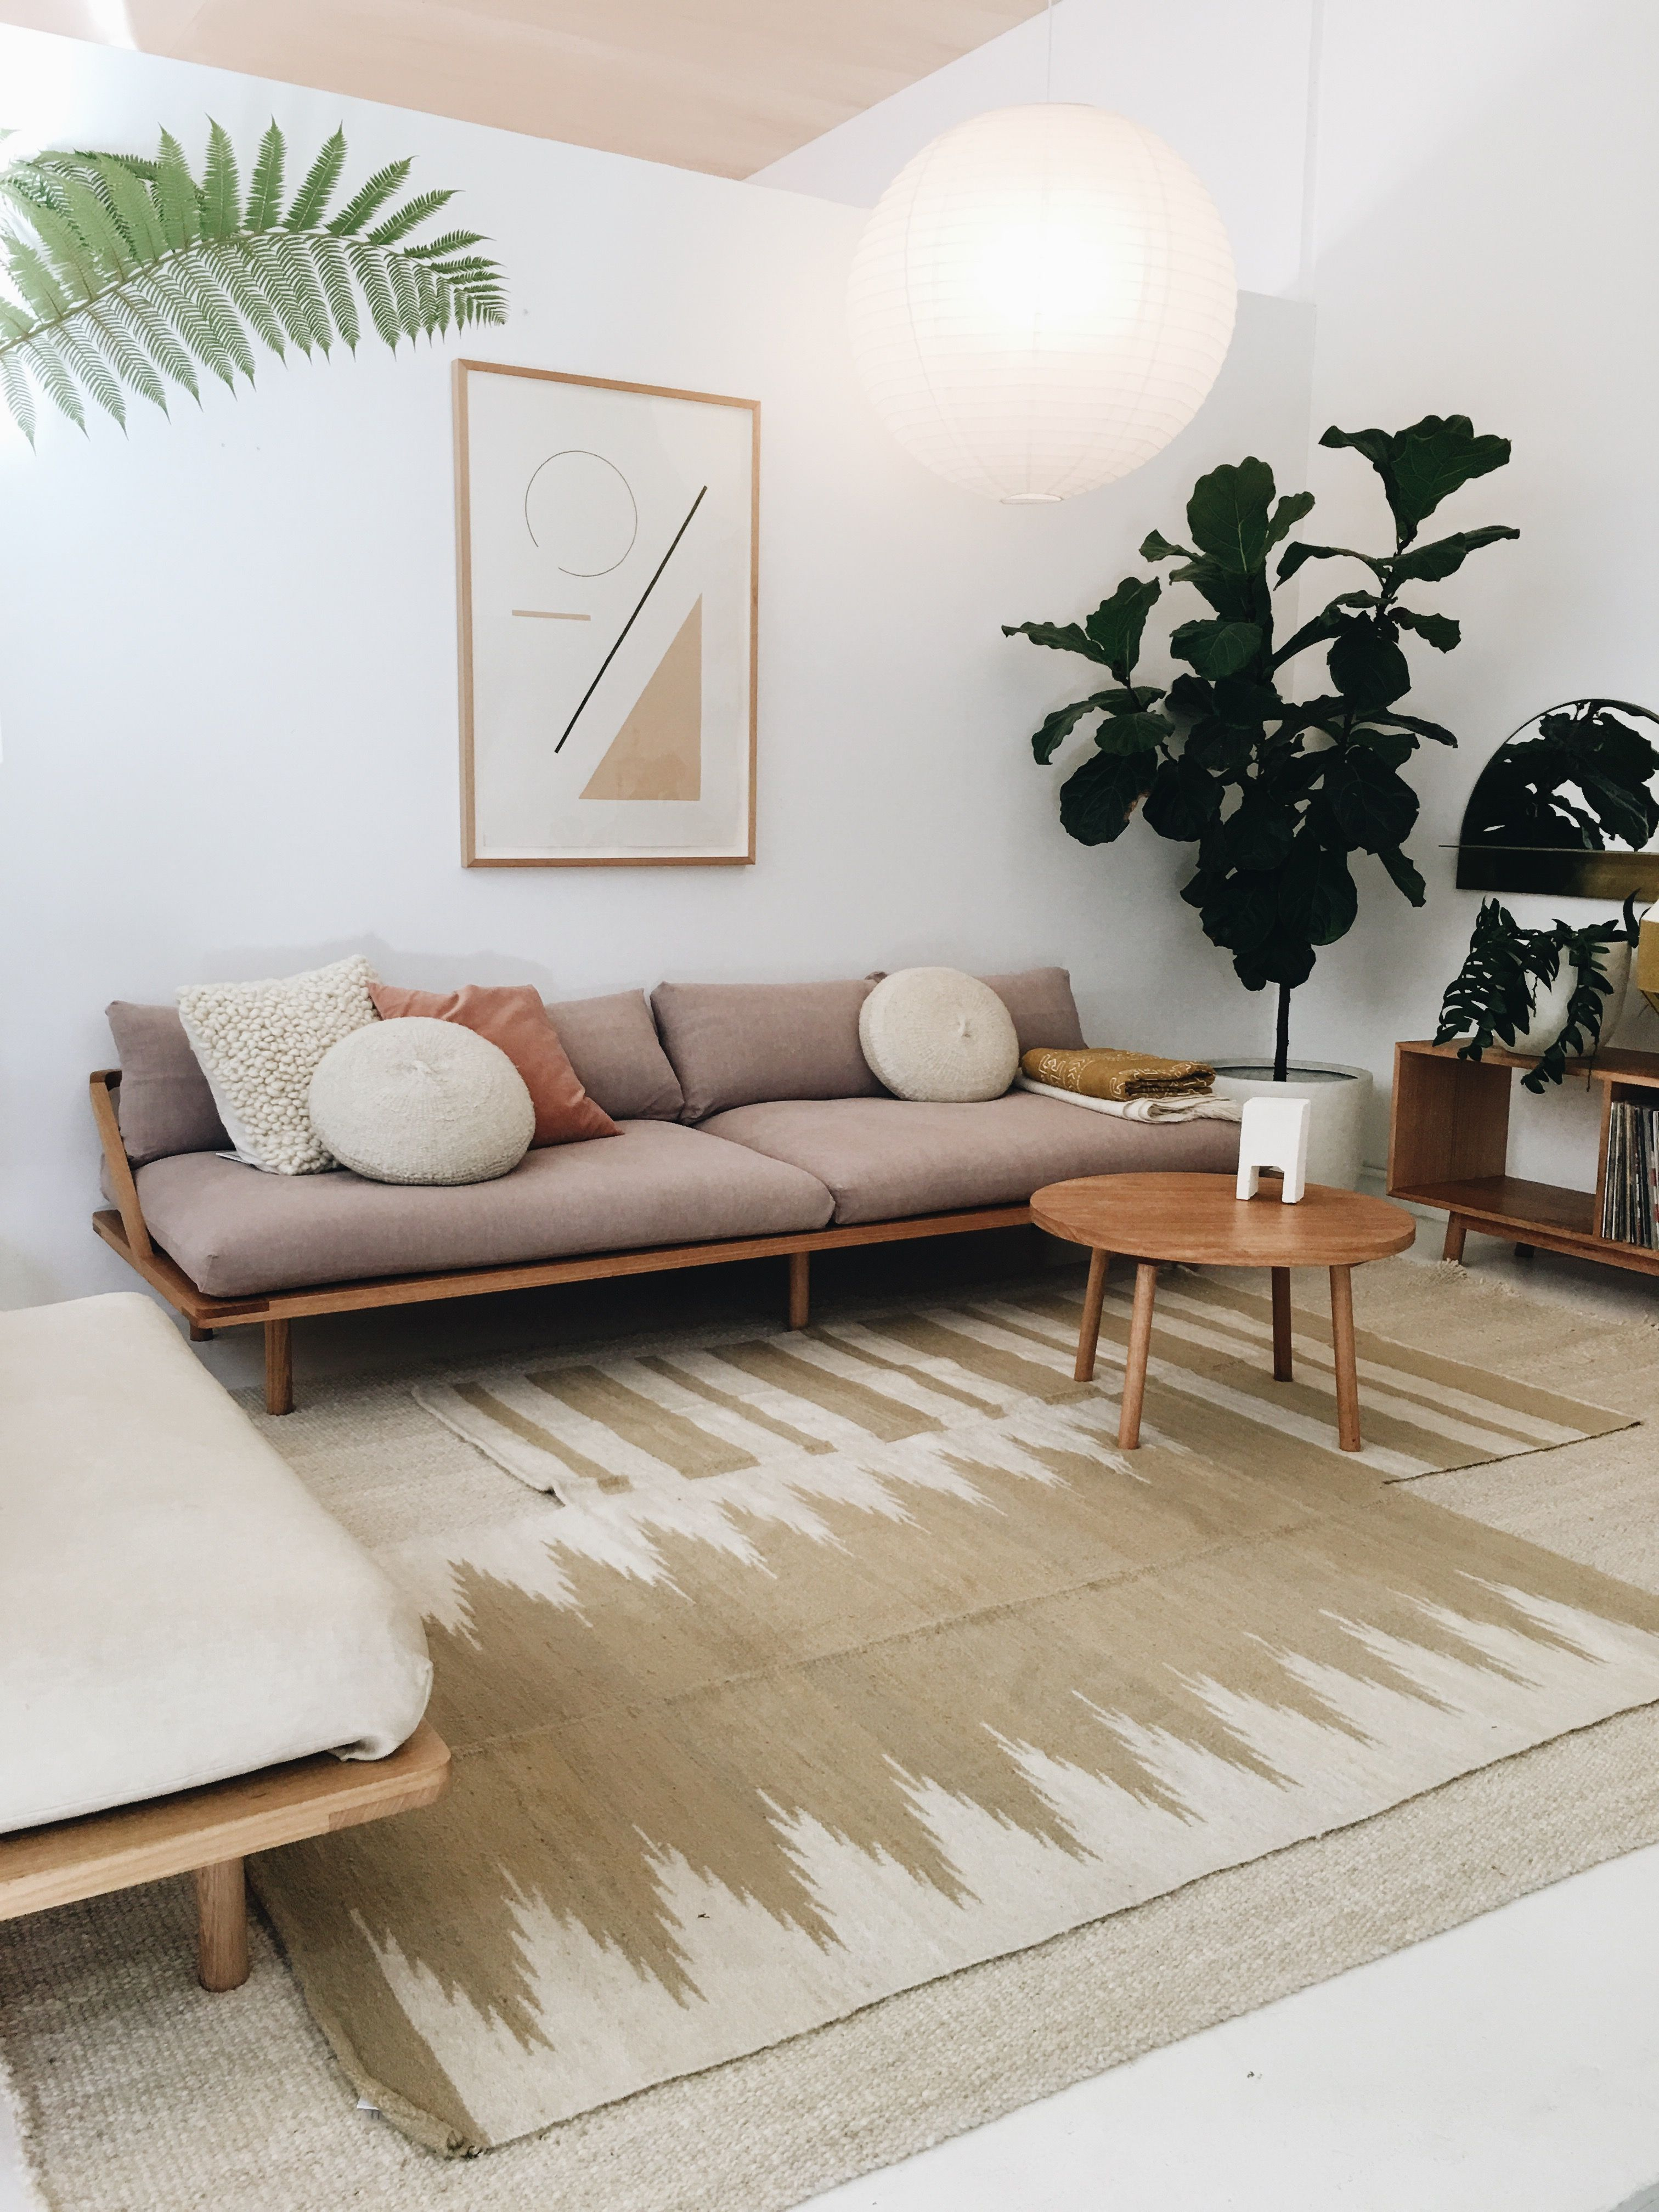 home decor ideas living room on  budget house at glance diy in pinterest and also rh